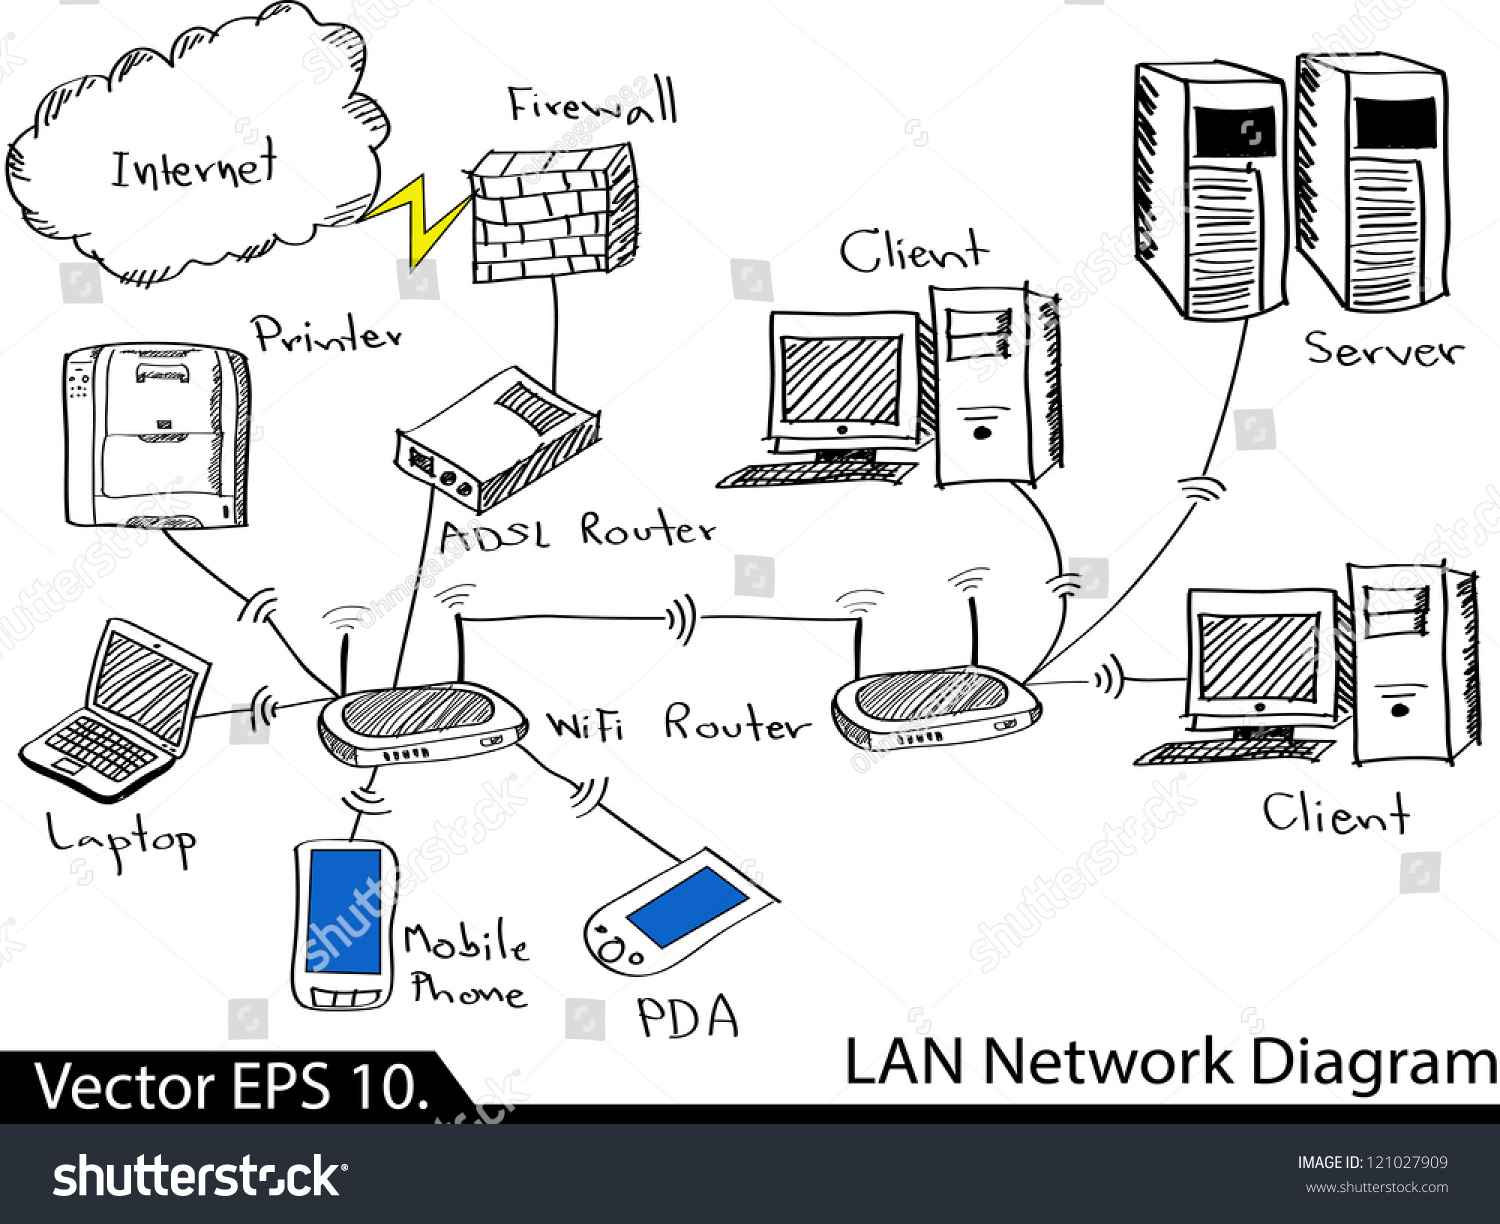 LAN Network Diagram Vector Illustrator Sketched Stock Vector ...